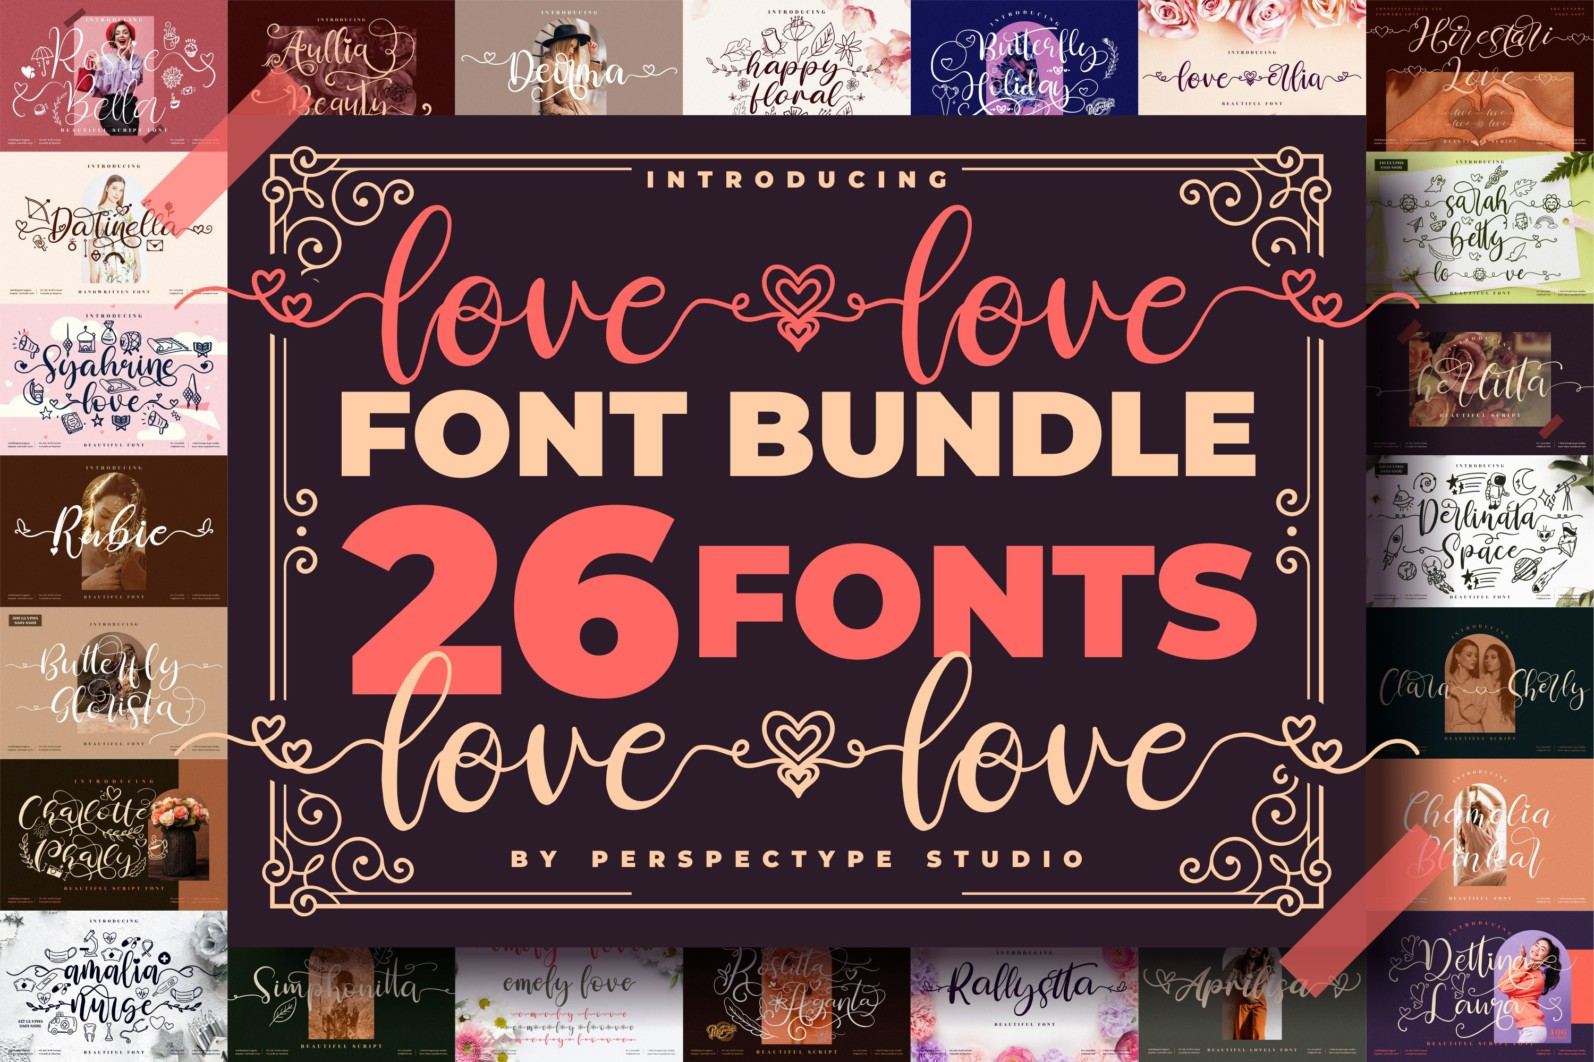 Love love Font Bundle from Perspectype Studio - 1 273 scaled -